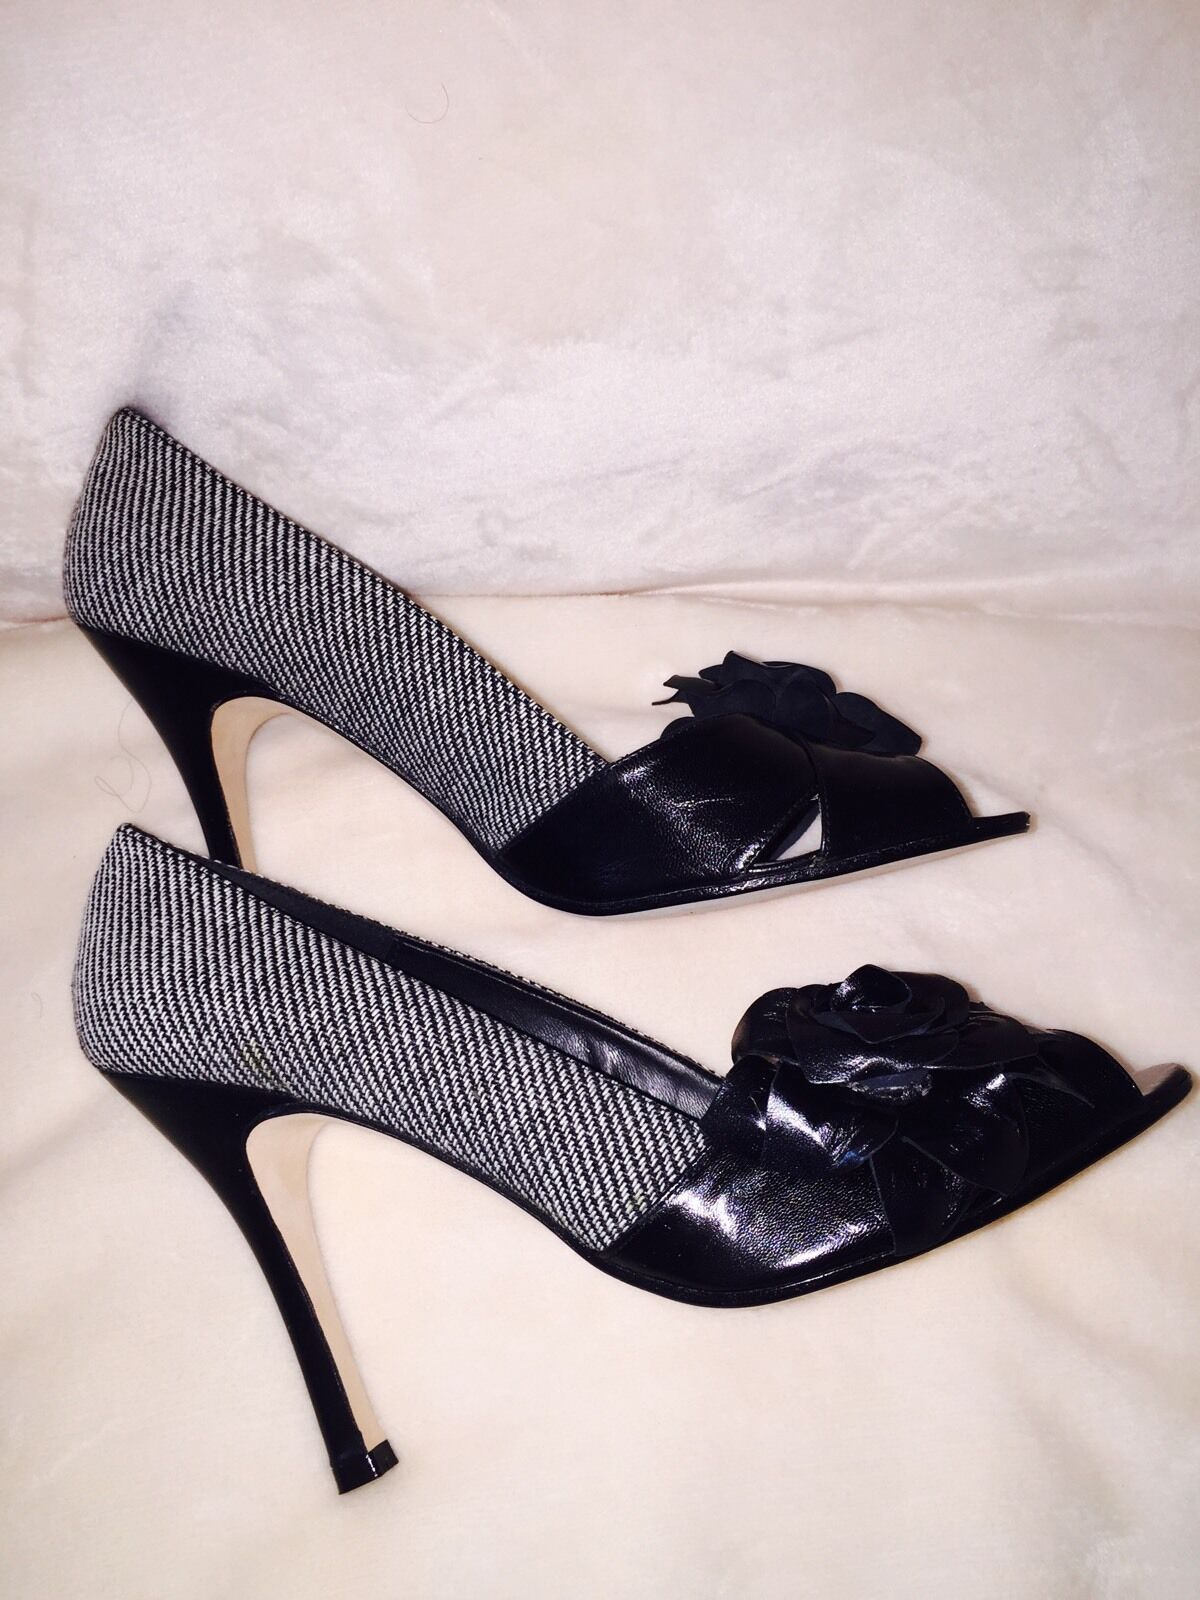 NWB, Sacha London Black & White White White Tamara Leather & Tweed, made in Spain size 9.5 B c3491e